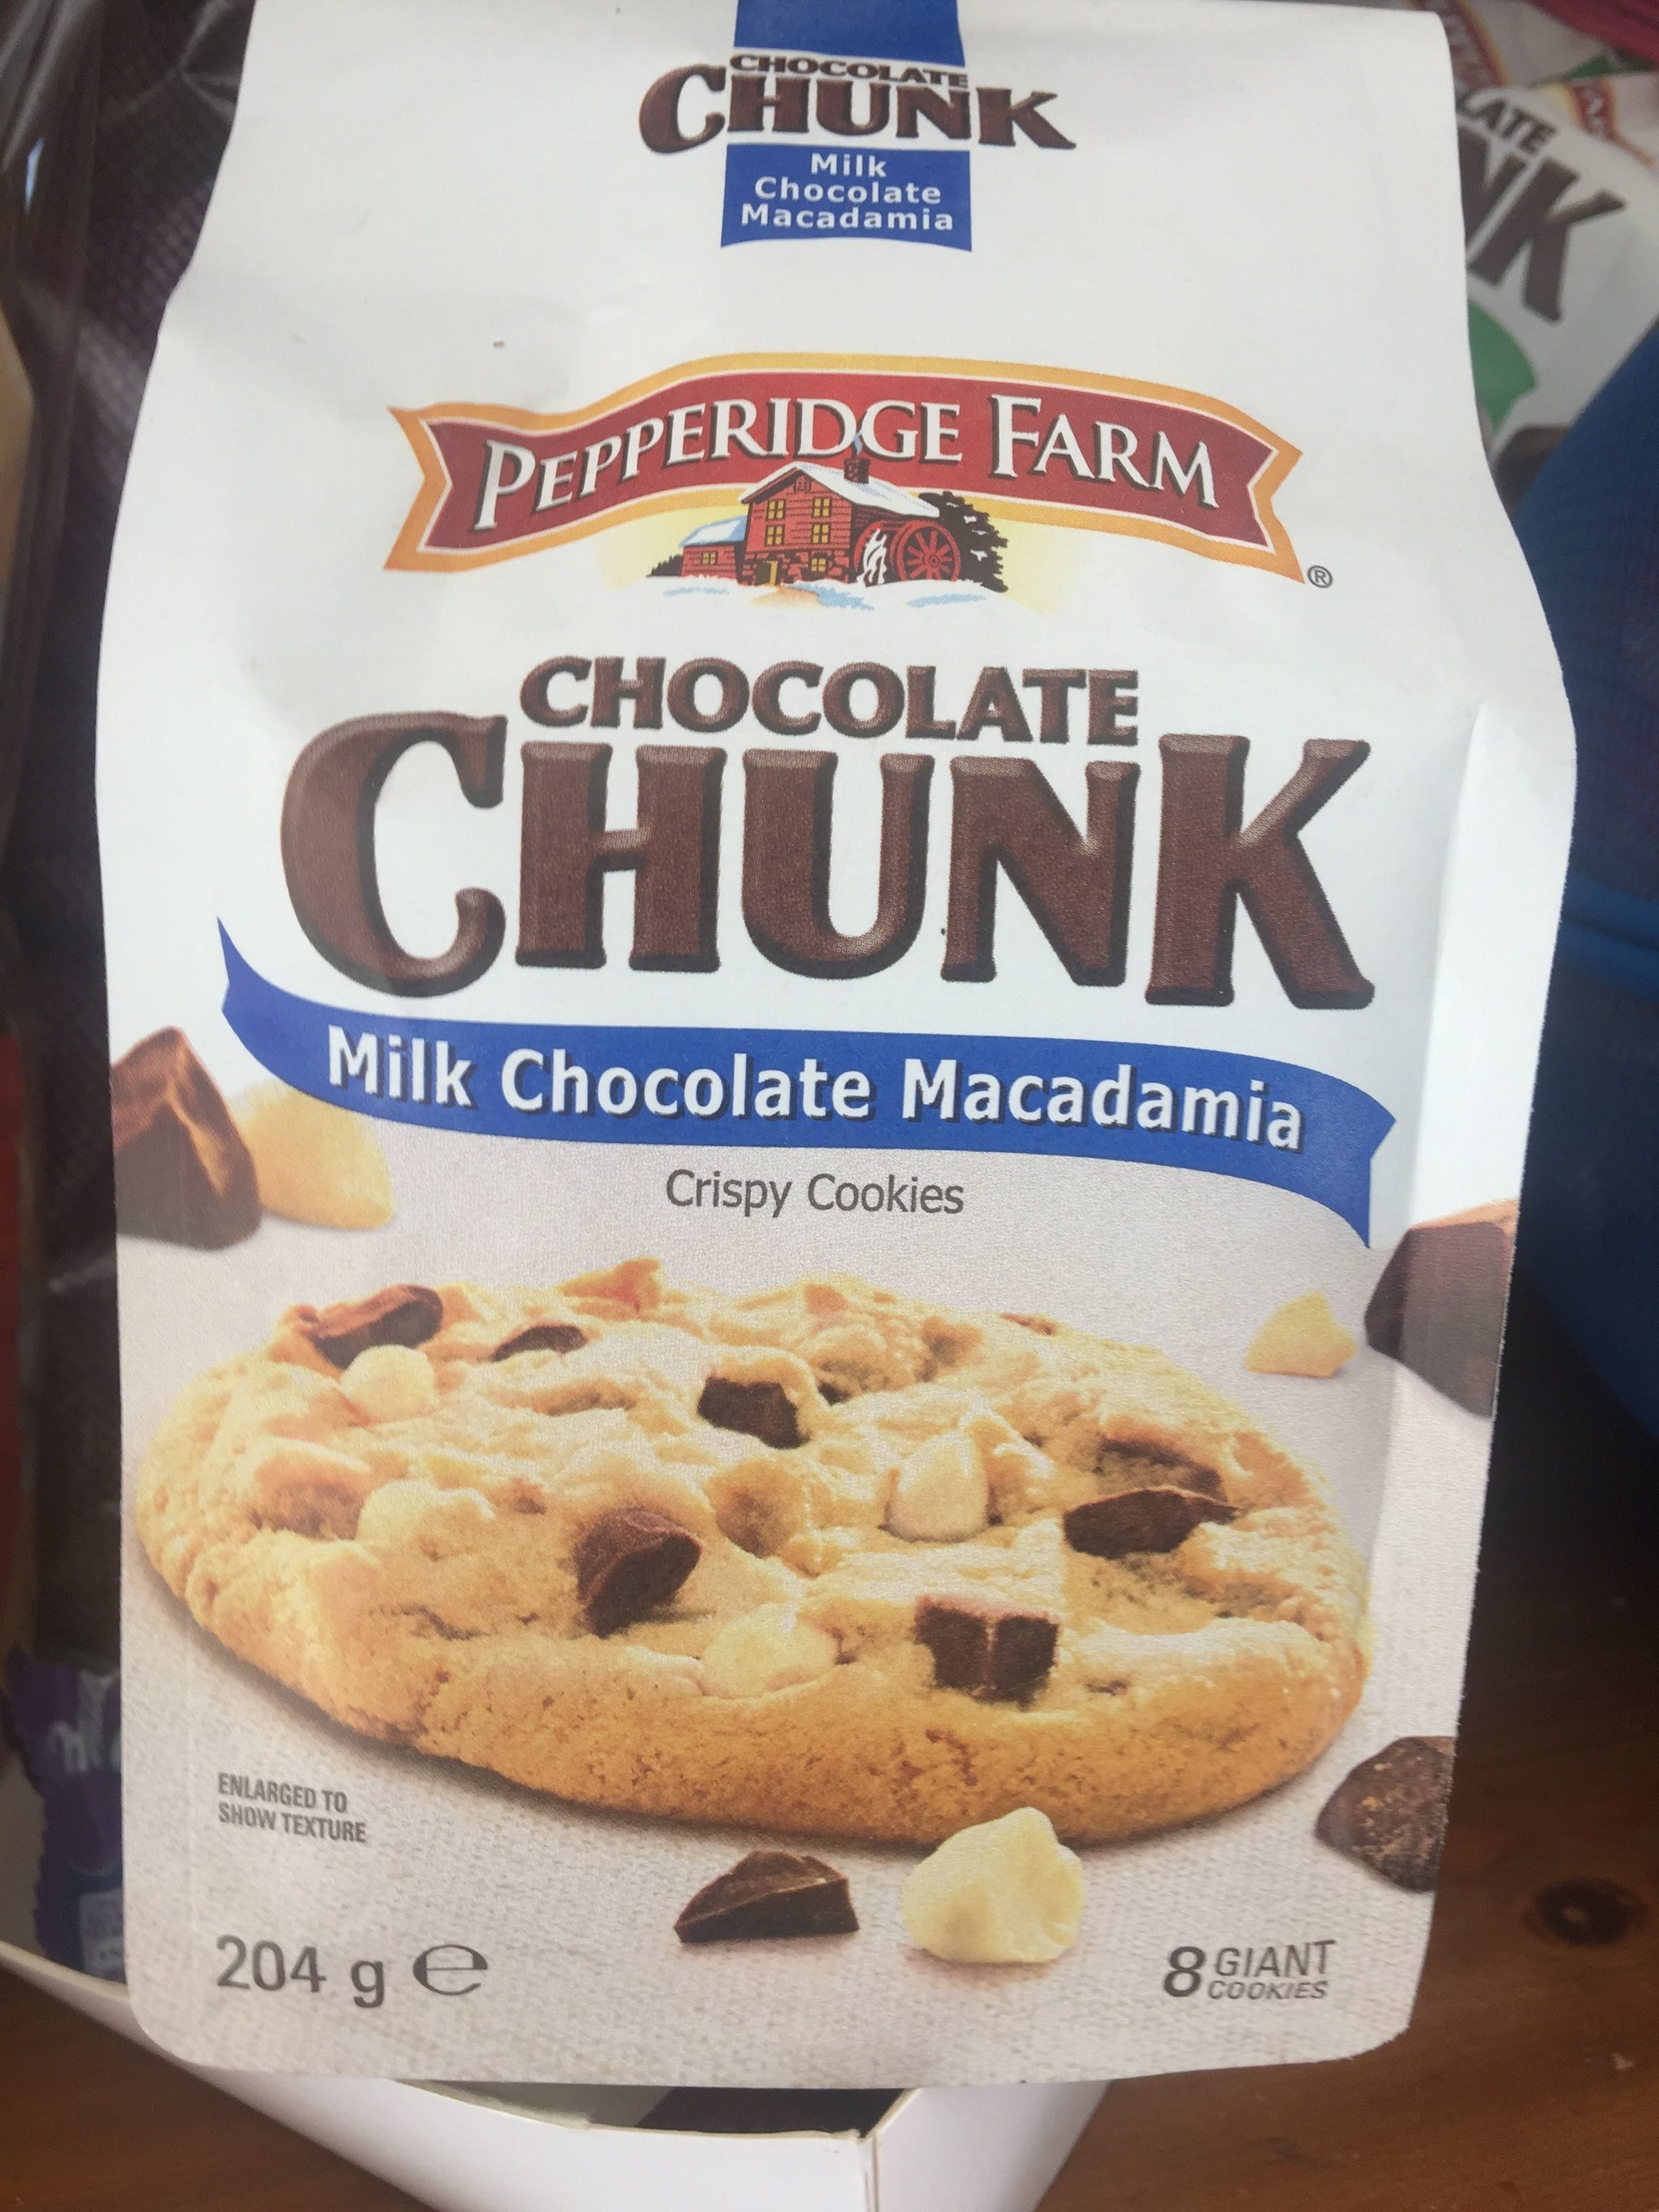 Pepperidge Farm Chocolate Chunk Milk Chocolate Macadamia - Product - fr